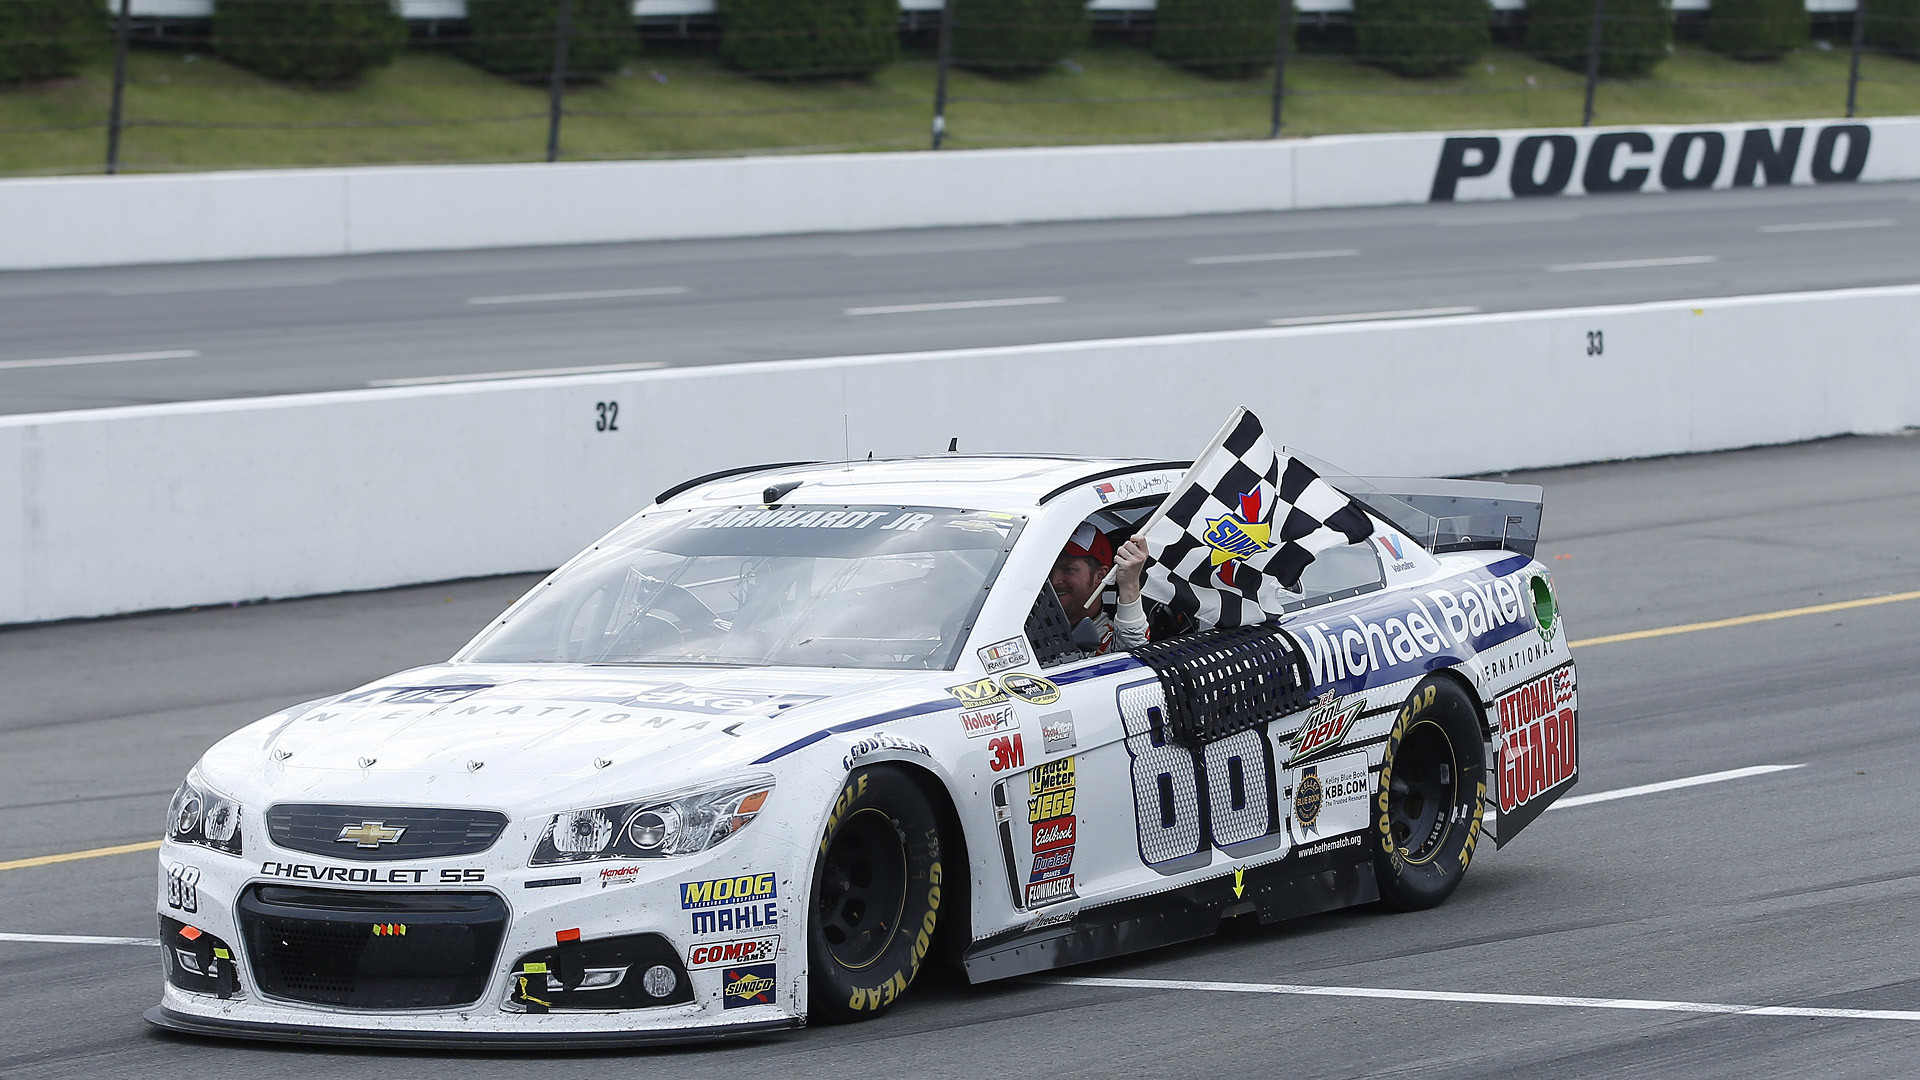 Dale Earnhardt Jr. wins again, sweeps Cup races at Pocono | NASCAR |  Sporting News